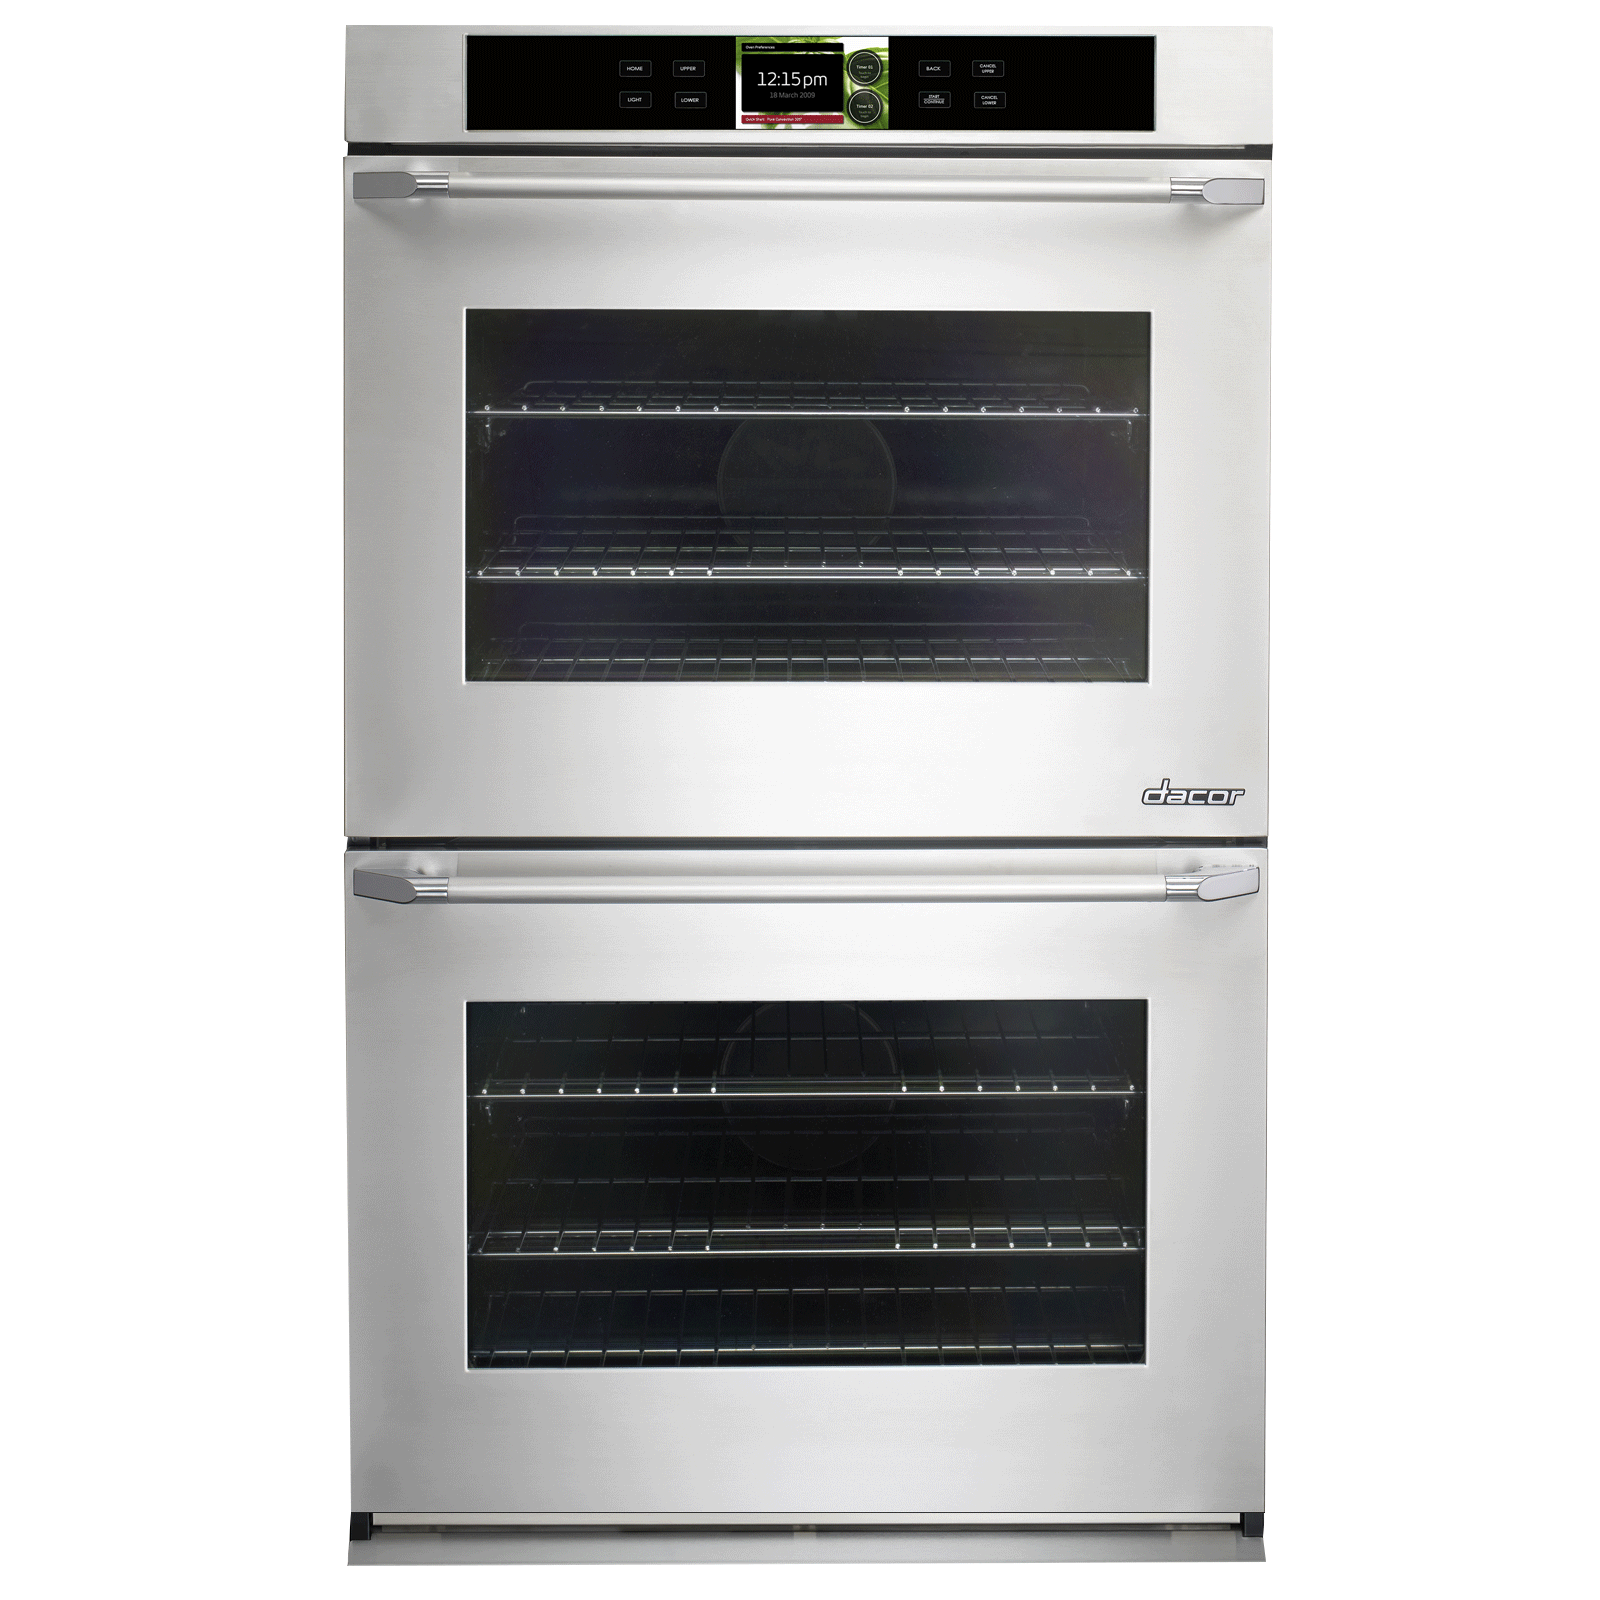 dacor dyo230ps discovery 30 iq double wall oven in stainless rh shopuneedaappliances com dacor oven manual self clean dacor oven manual reset